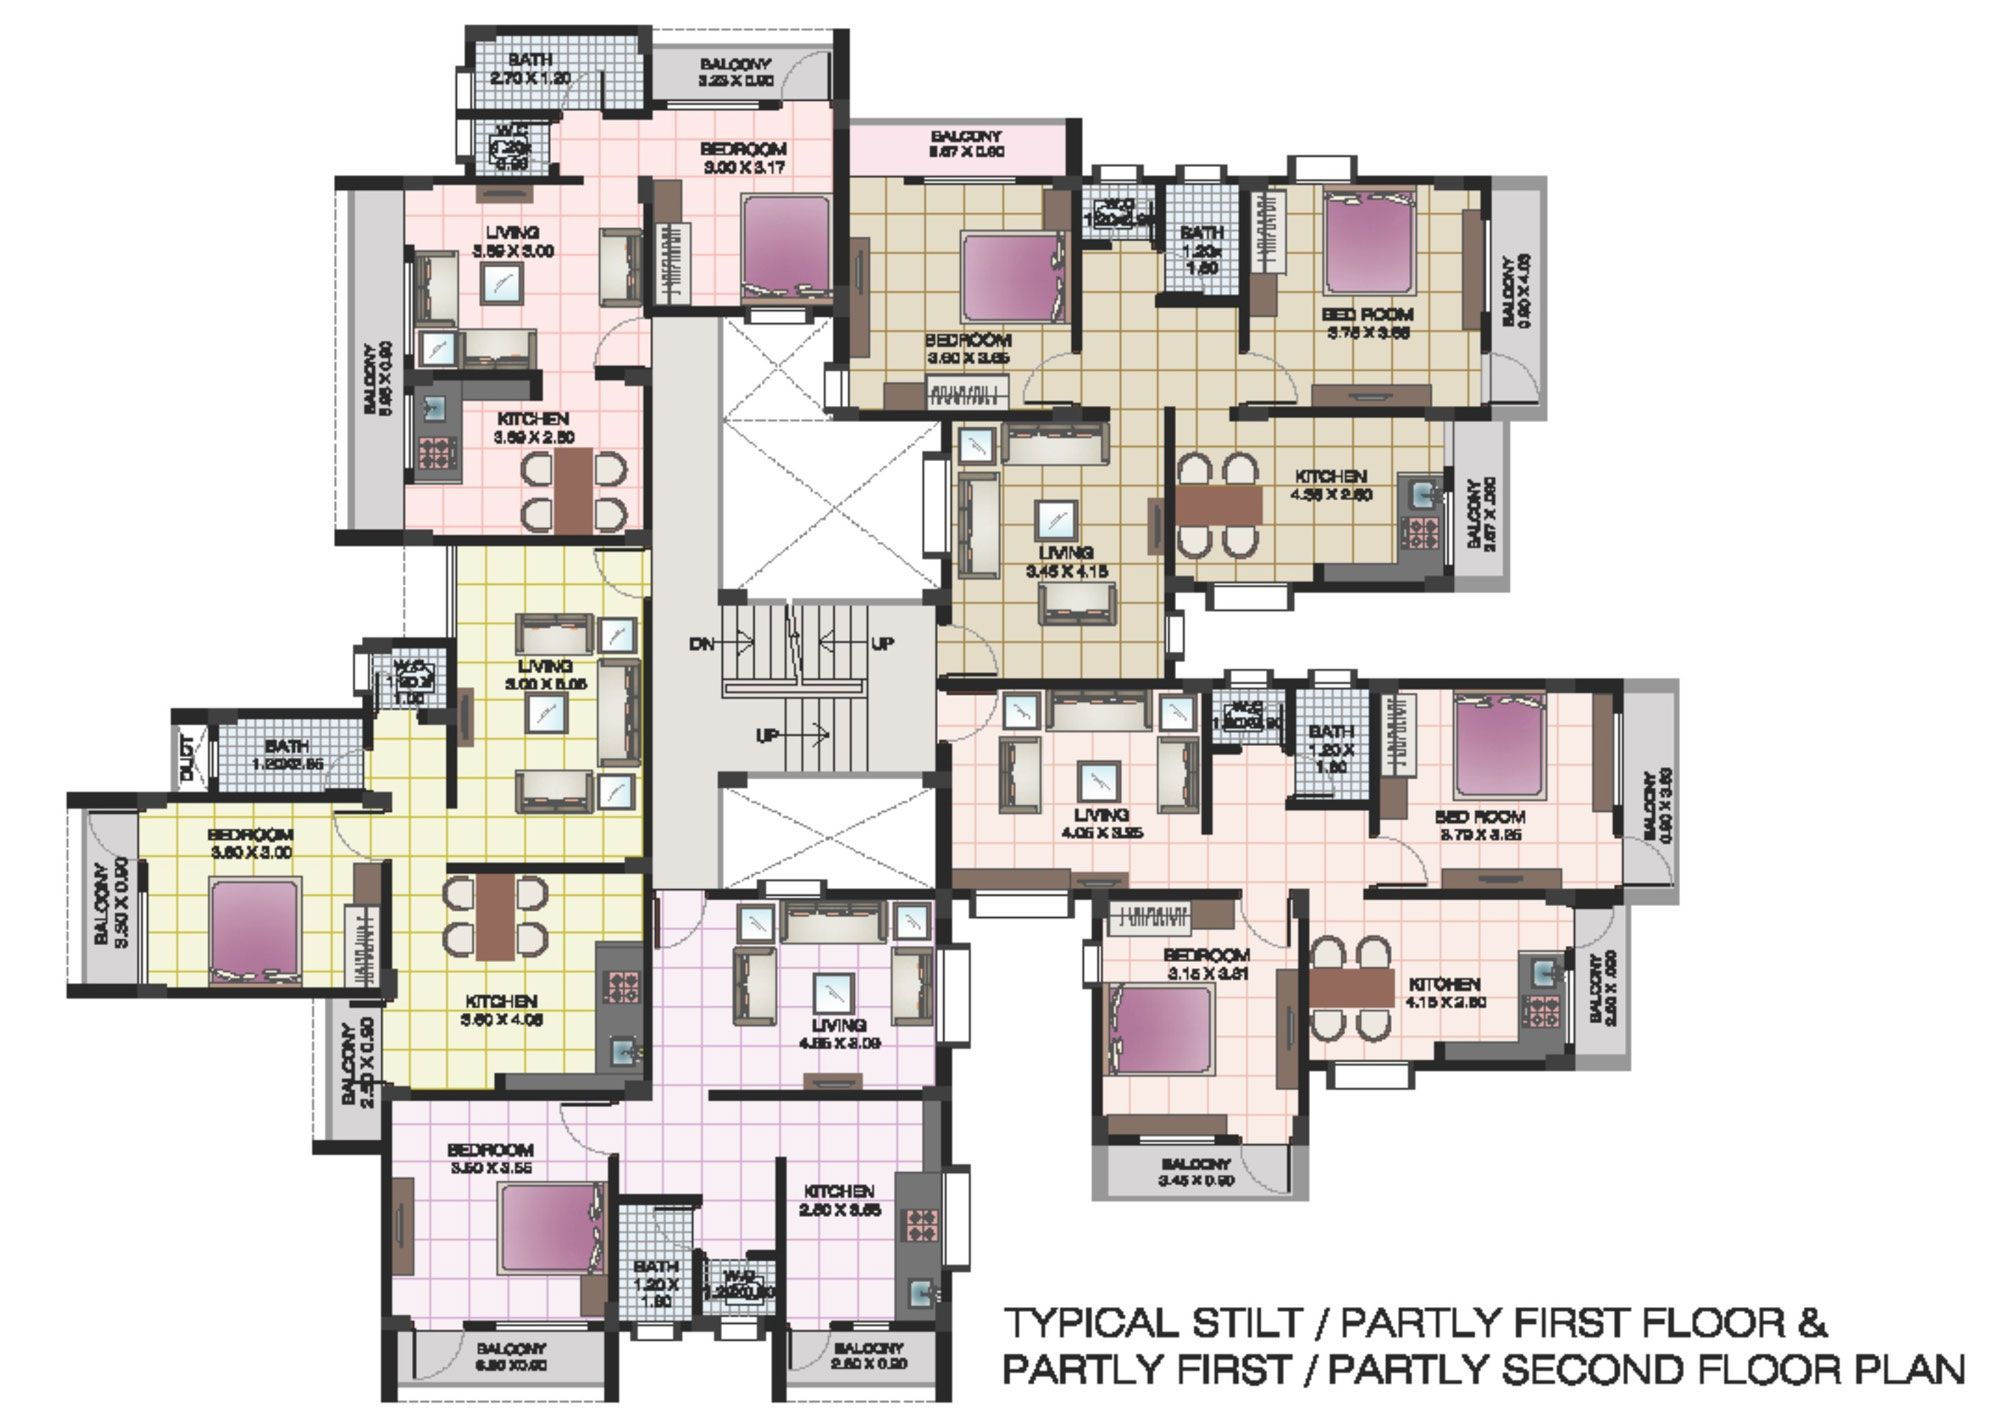 24 Unit Apartment Building Plans Apartment Structures Apartment Floor Plans Of Shri